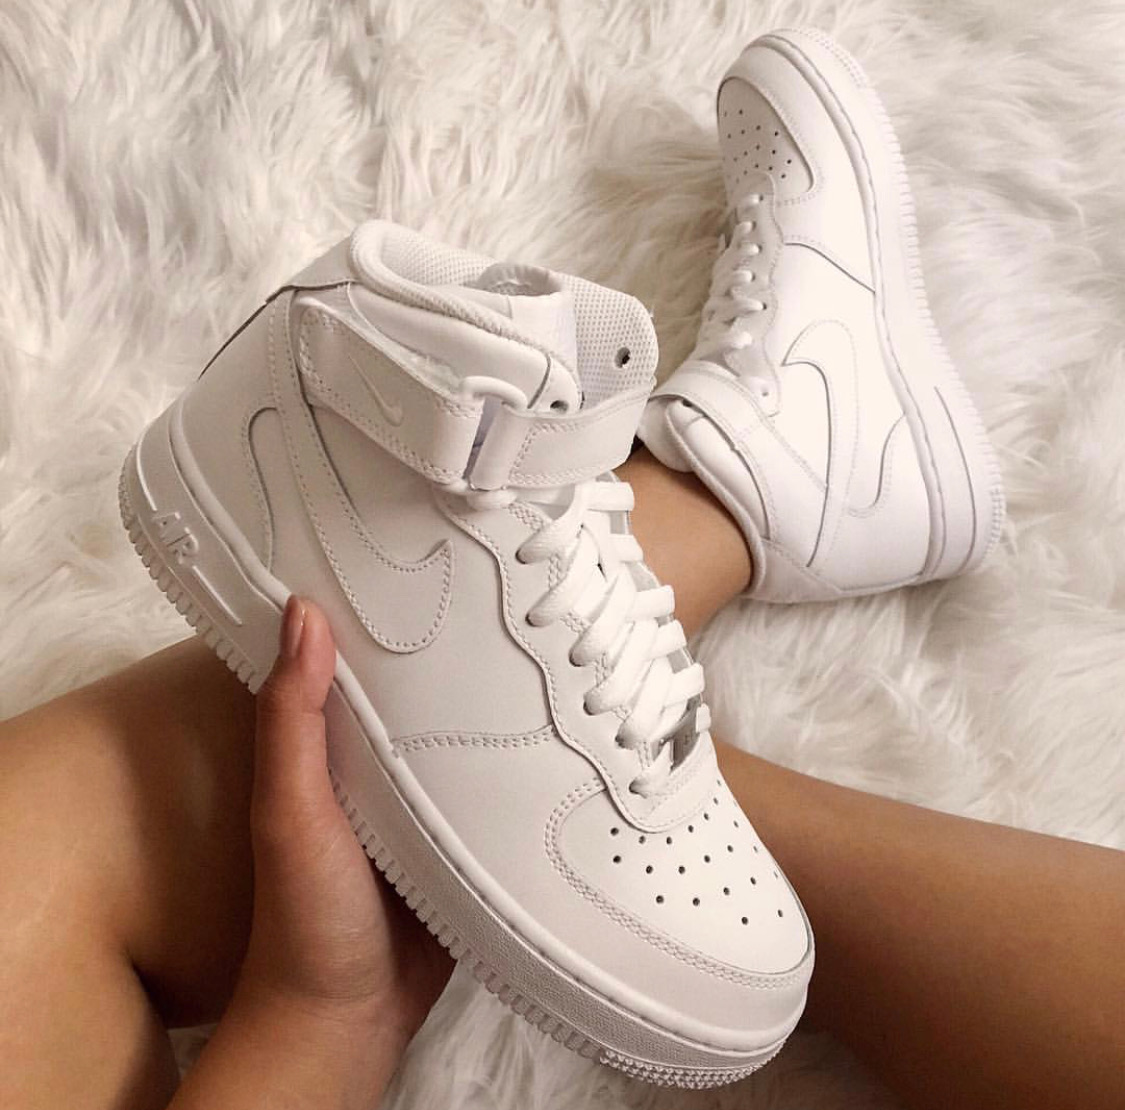 Nike Air Force 1 Mid in Triple White on sale